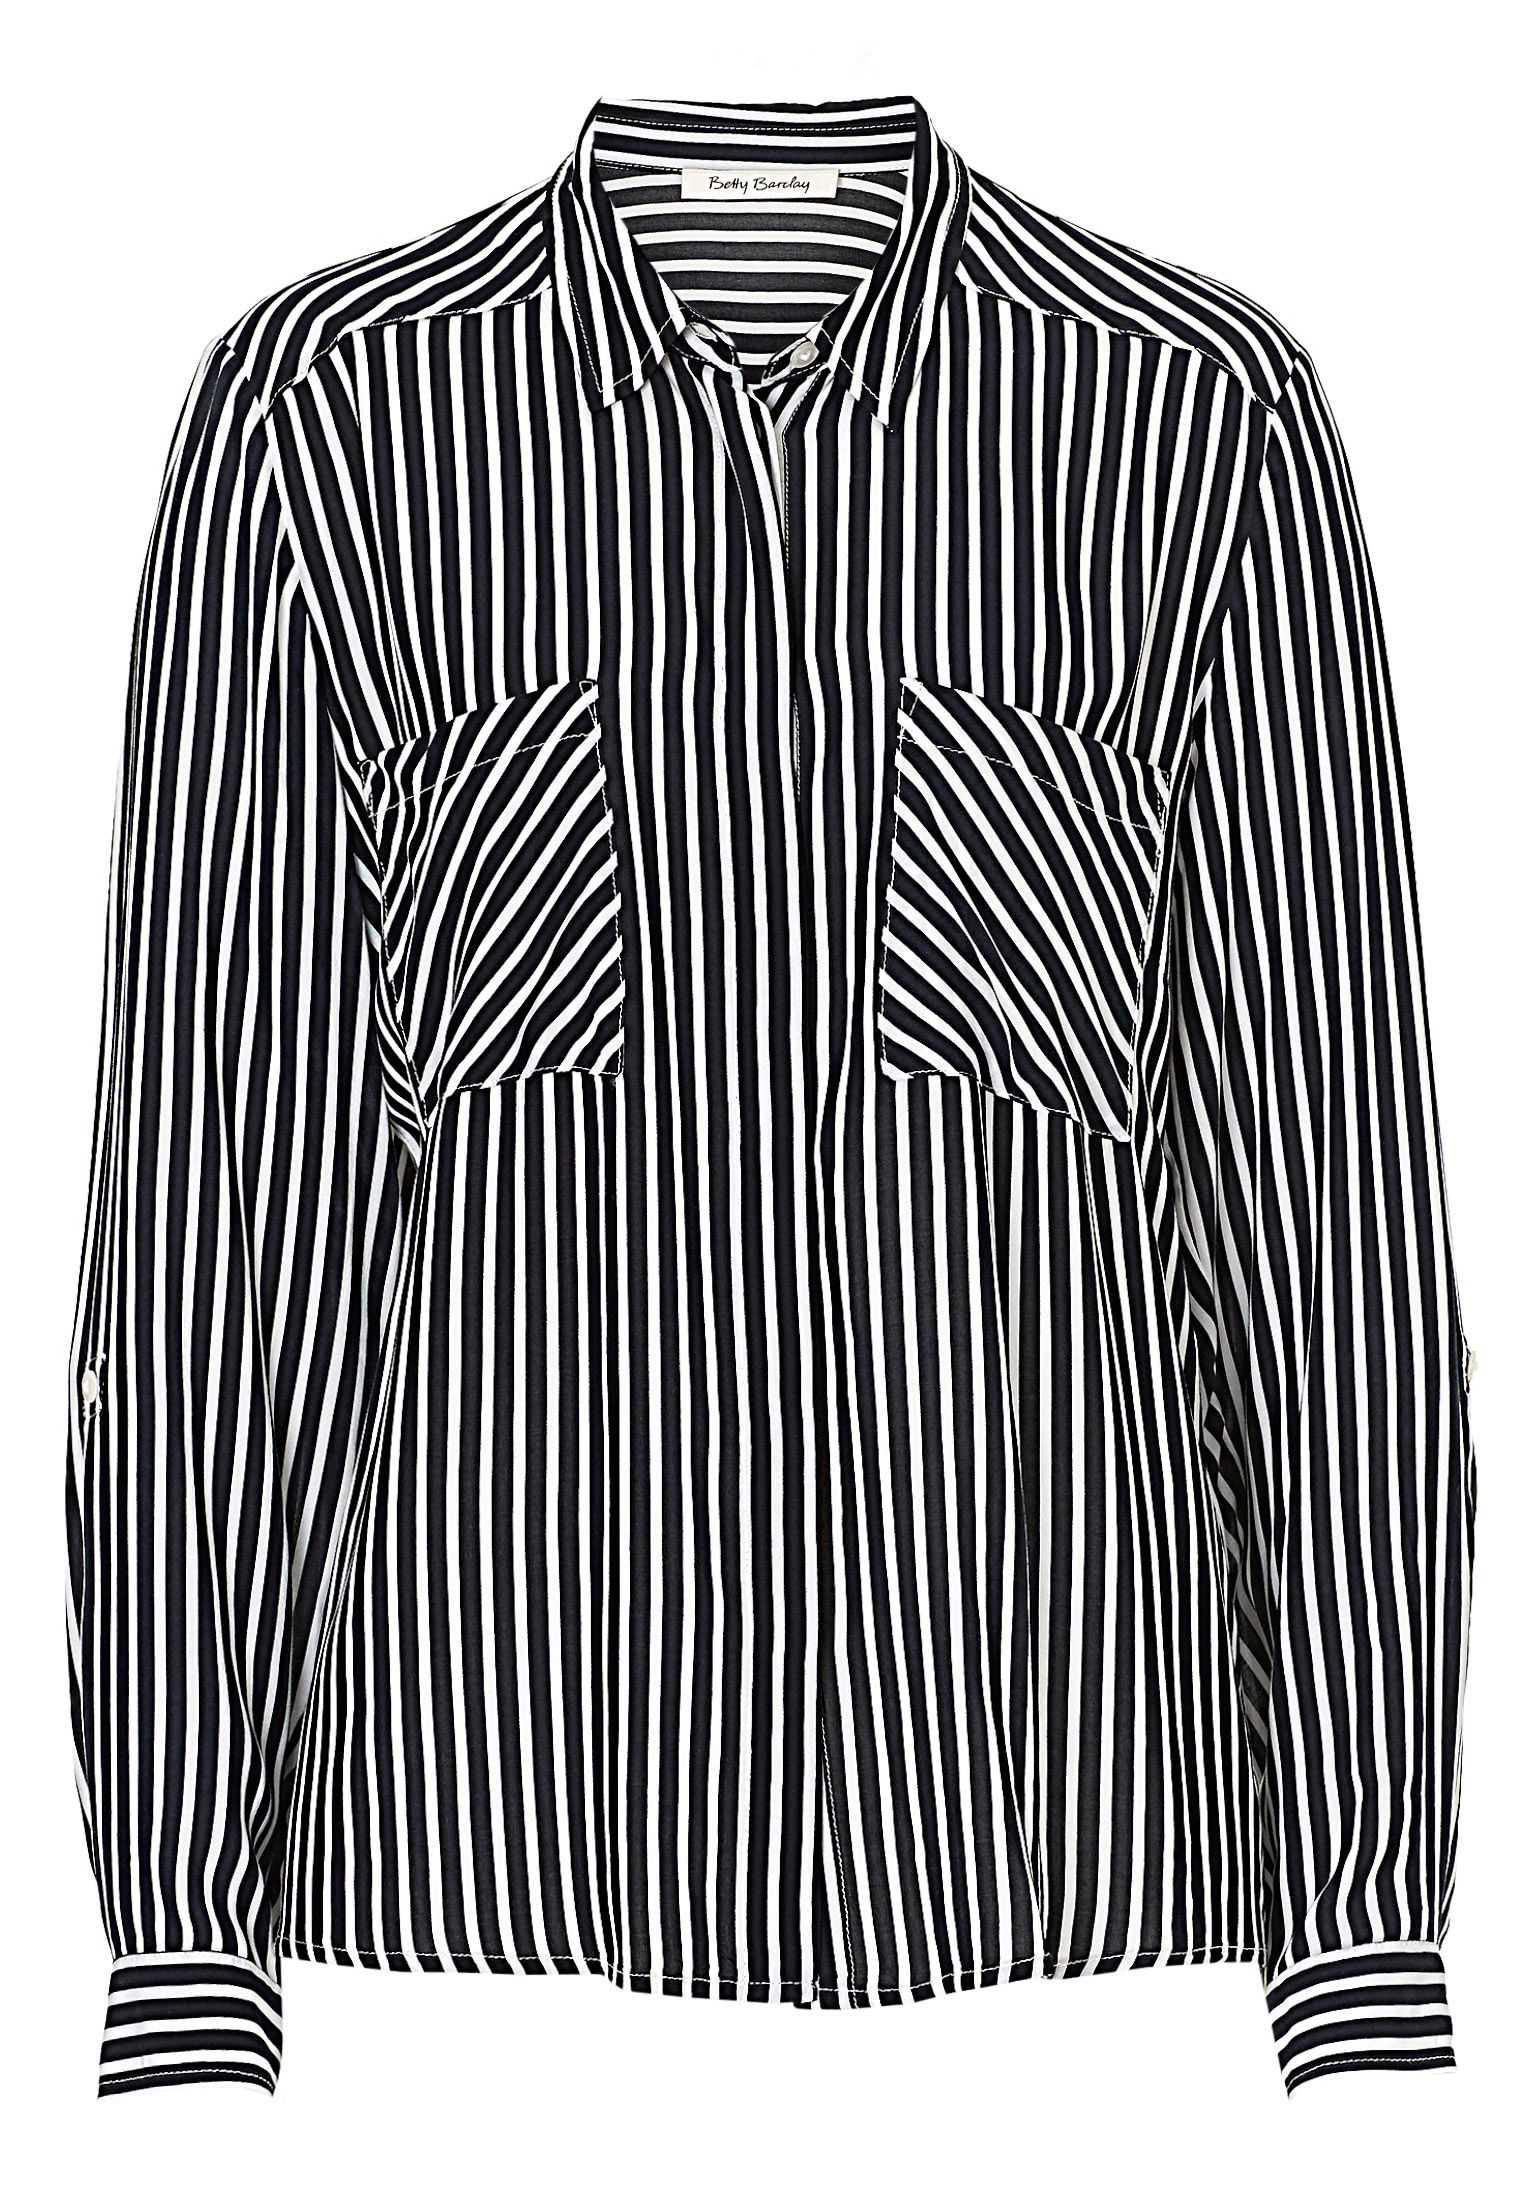 Betty Barclay Striped shirt, Cream